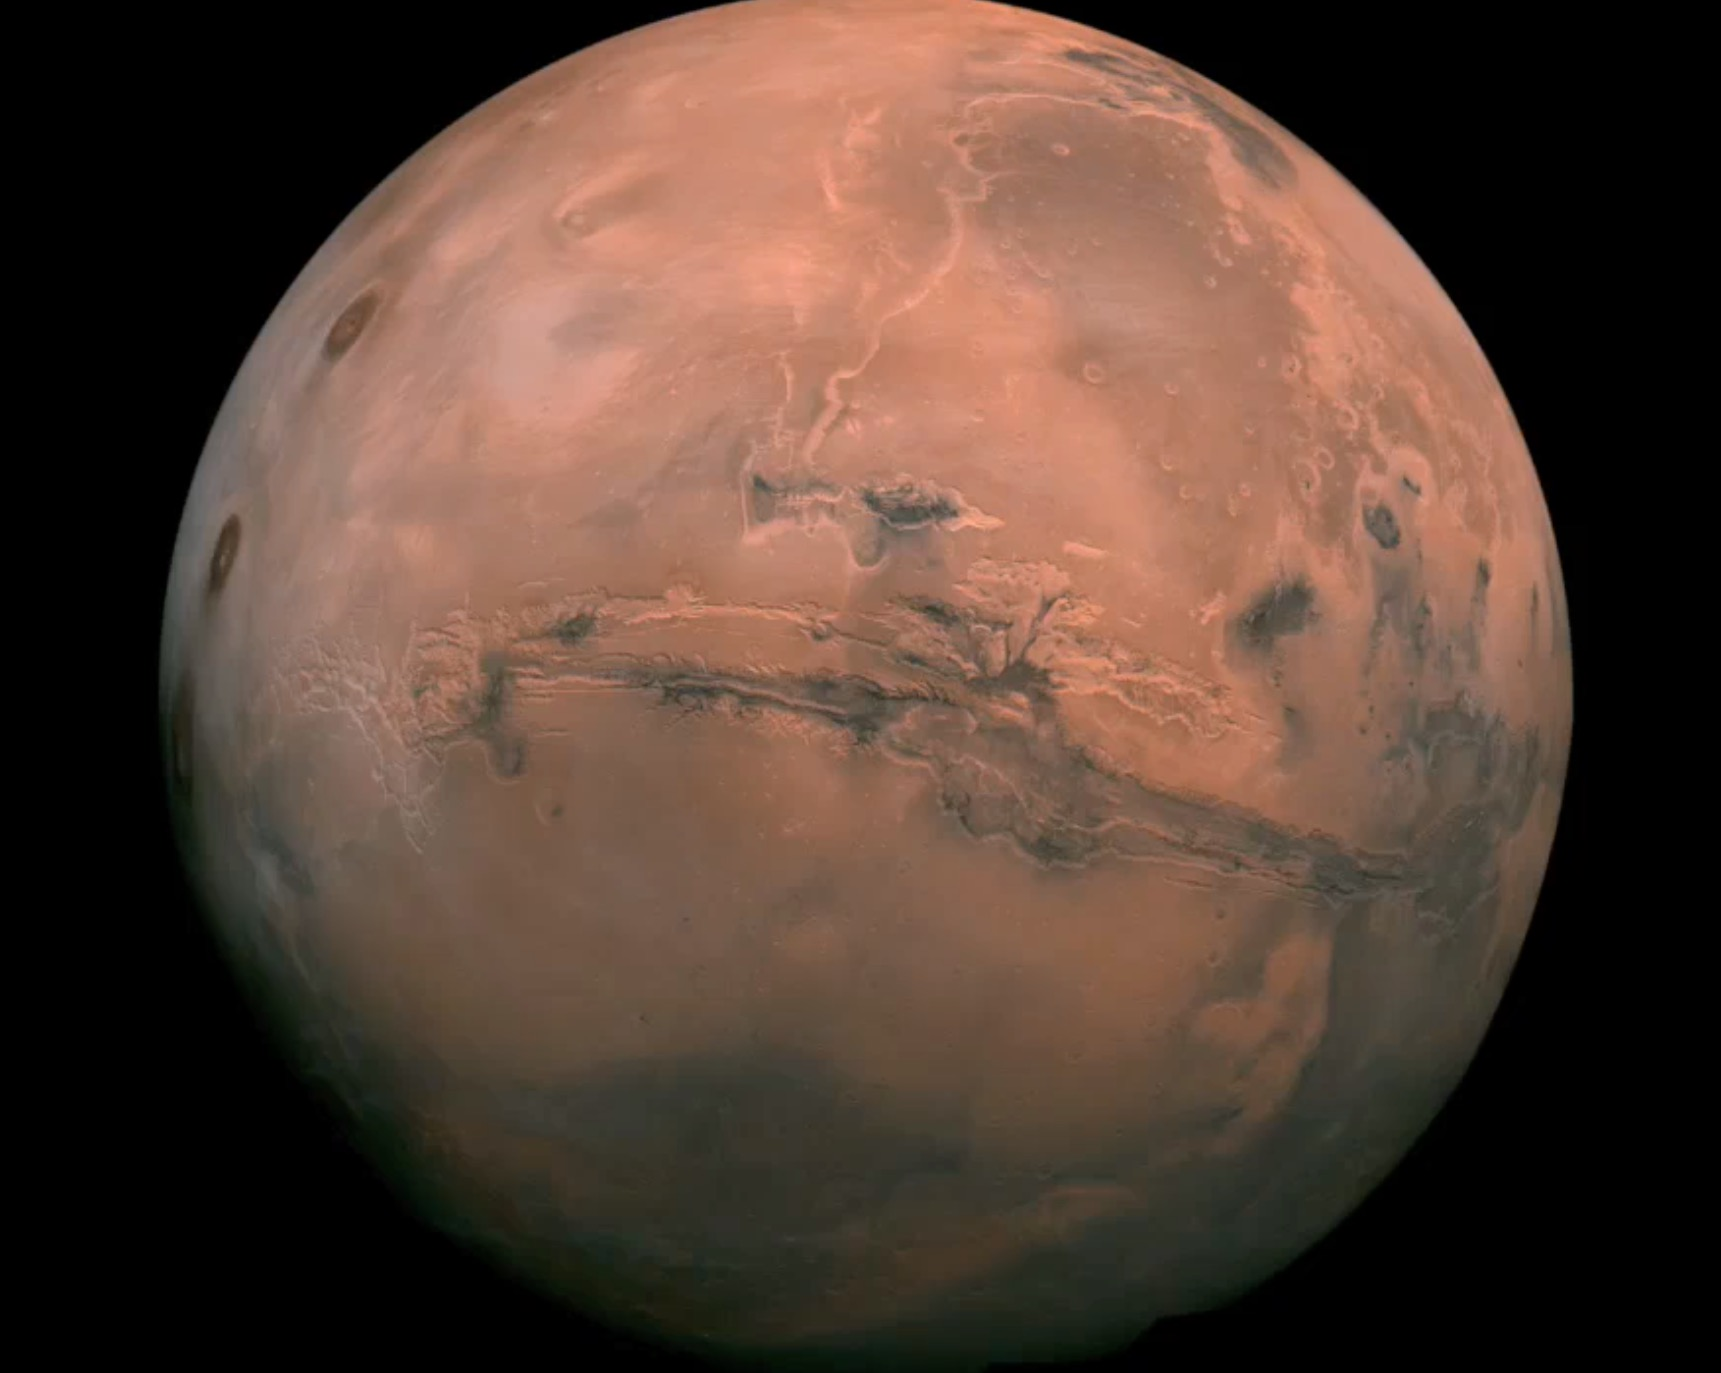 Mars, of course